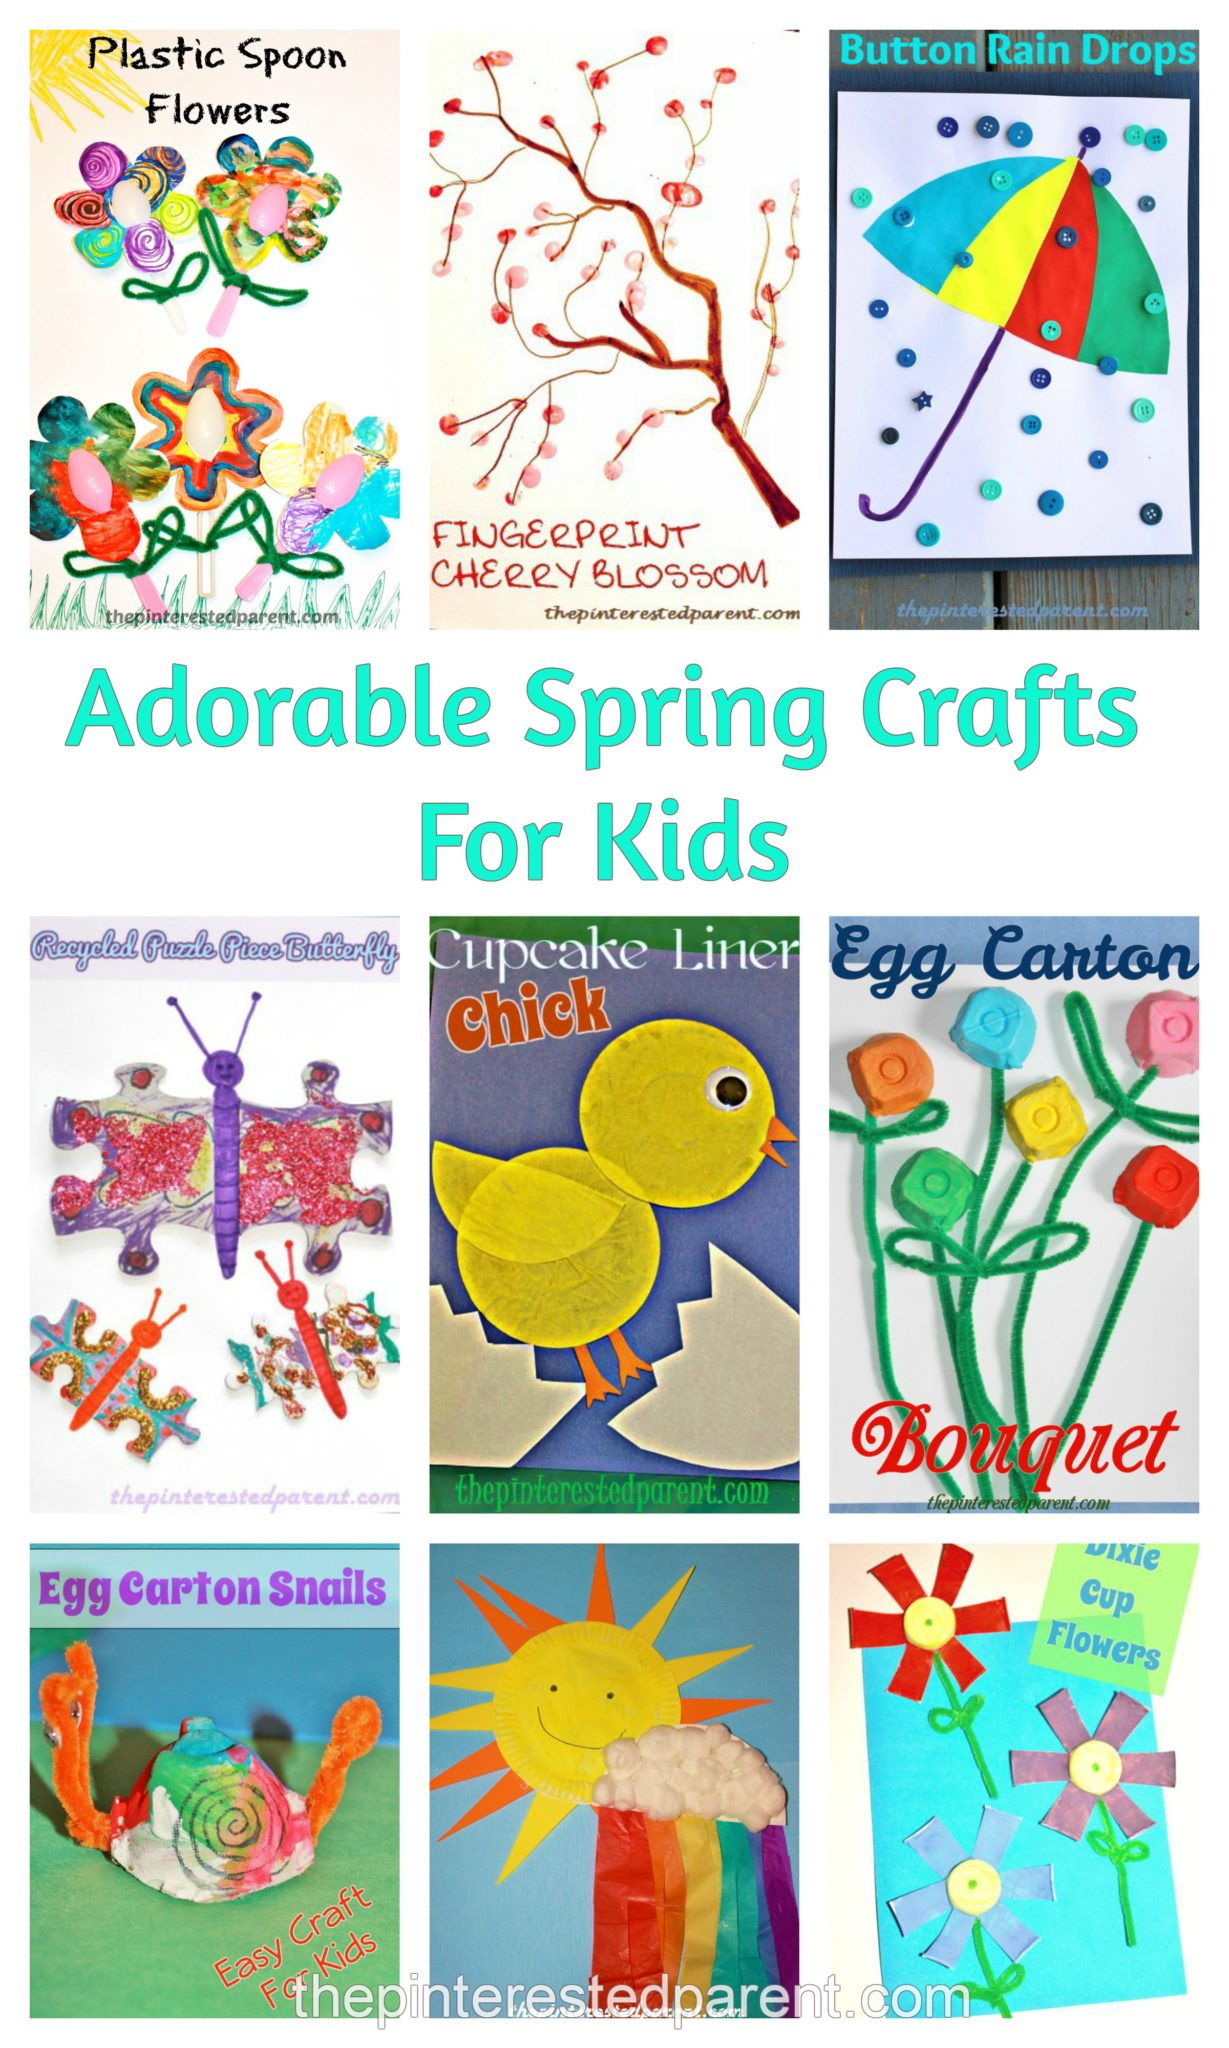 Cute Amp Simple Spring Crafts For Kids The Pinterested Parent